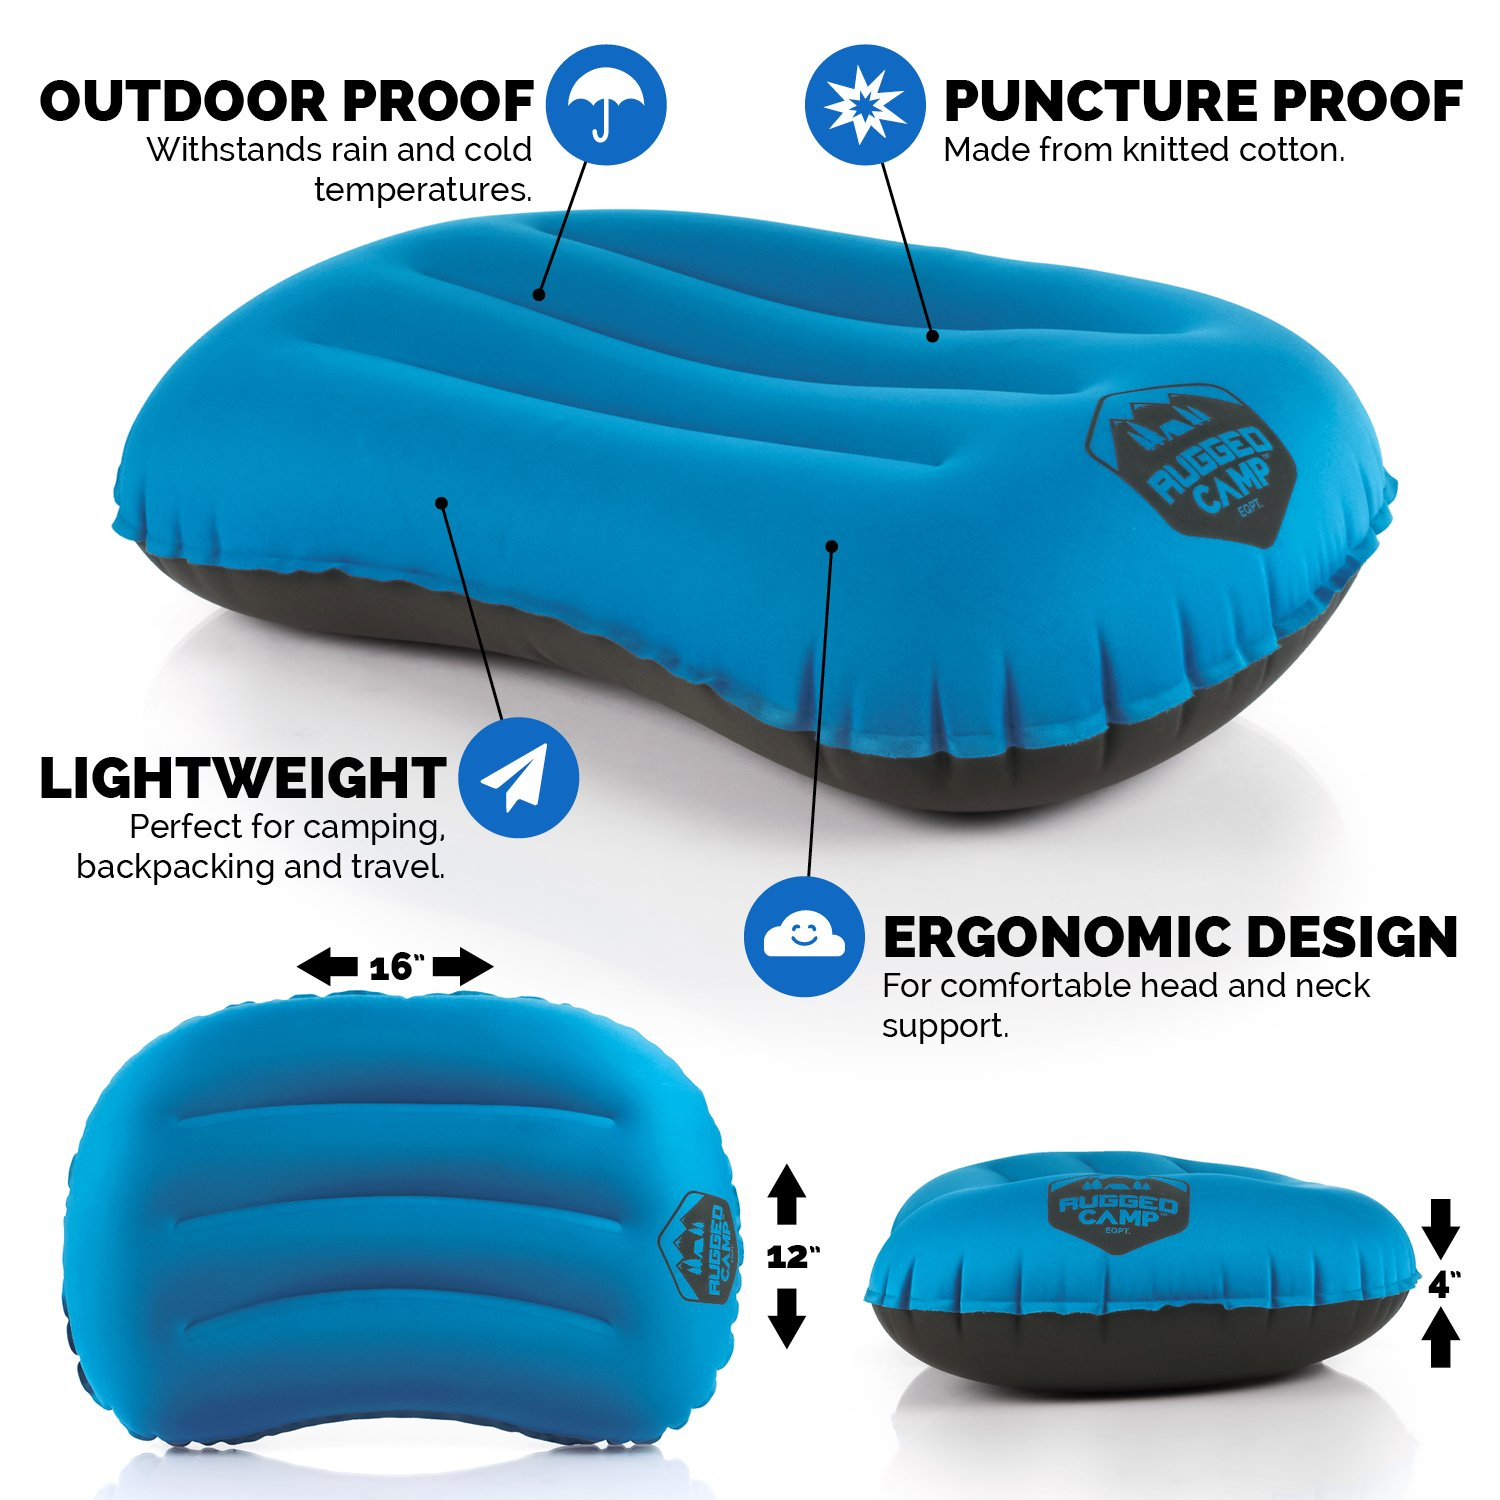 Inflatable Travel / Camping Pillows. Ergonomic Head and Neck Support